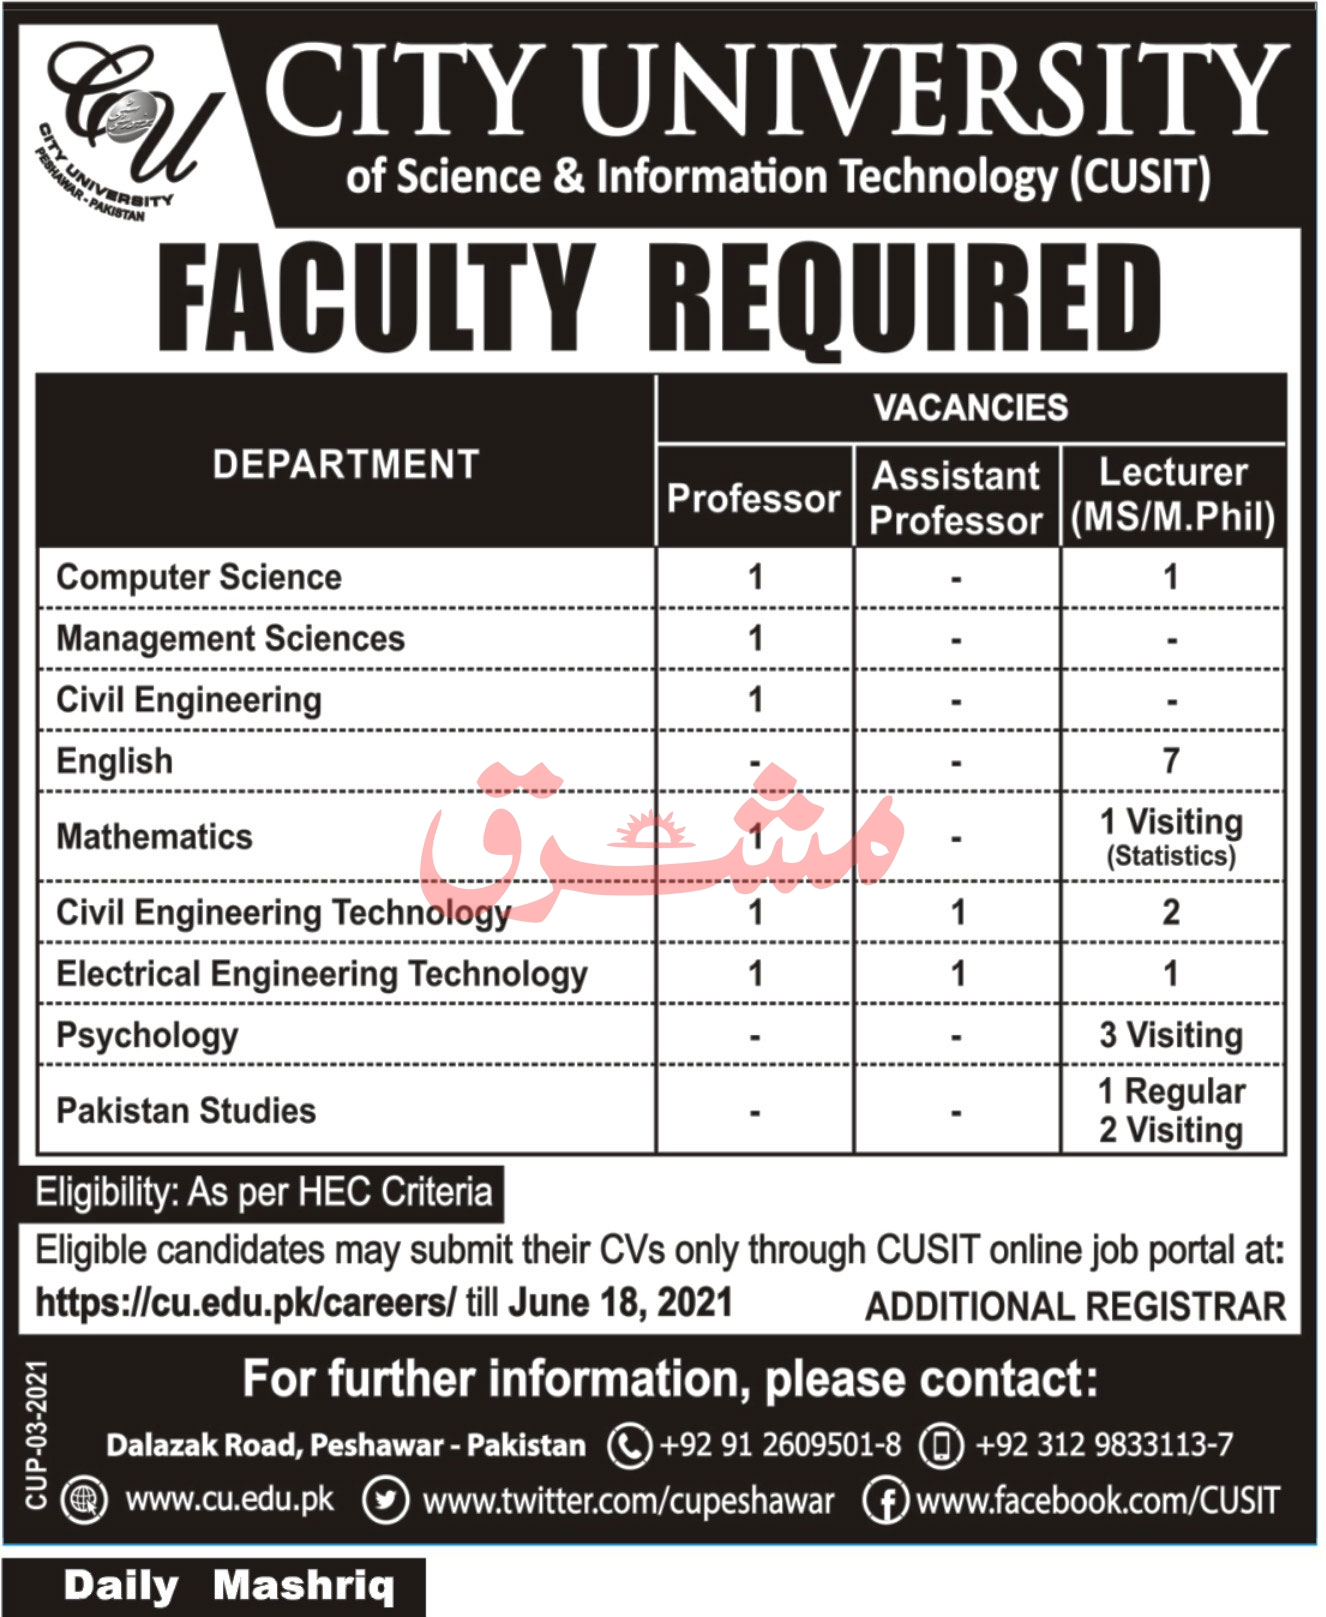 CUSIT City University of Science and Information Technology Jobs 2021